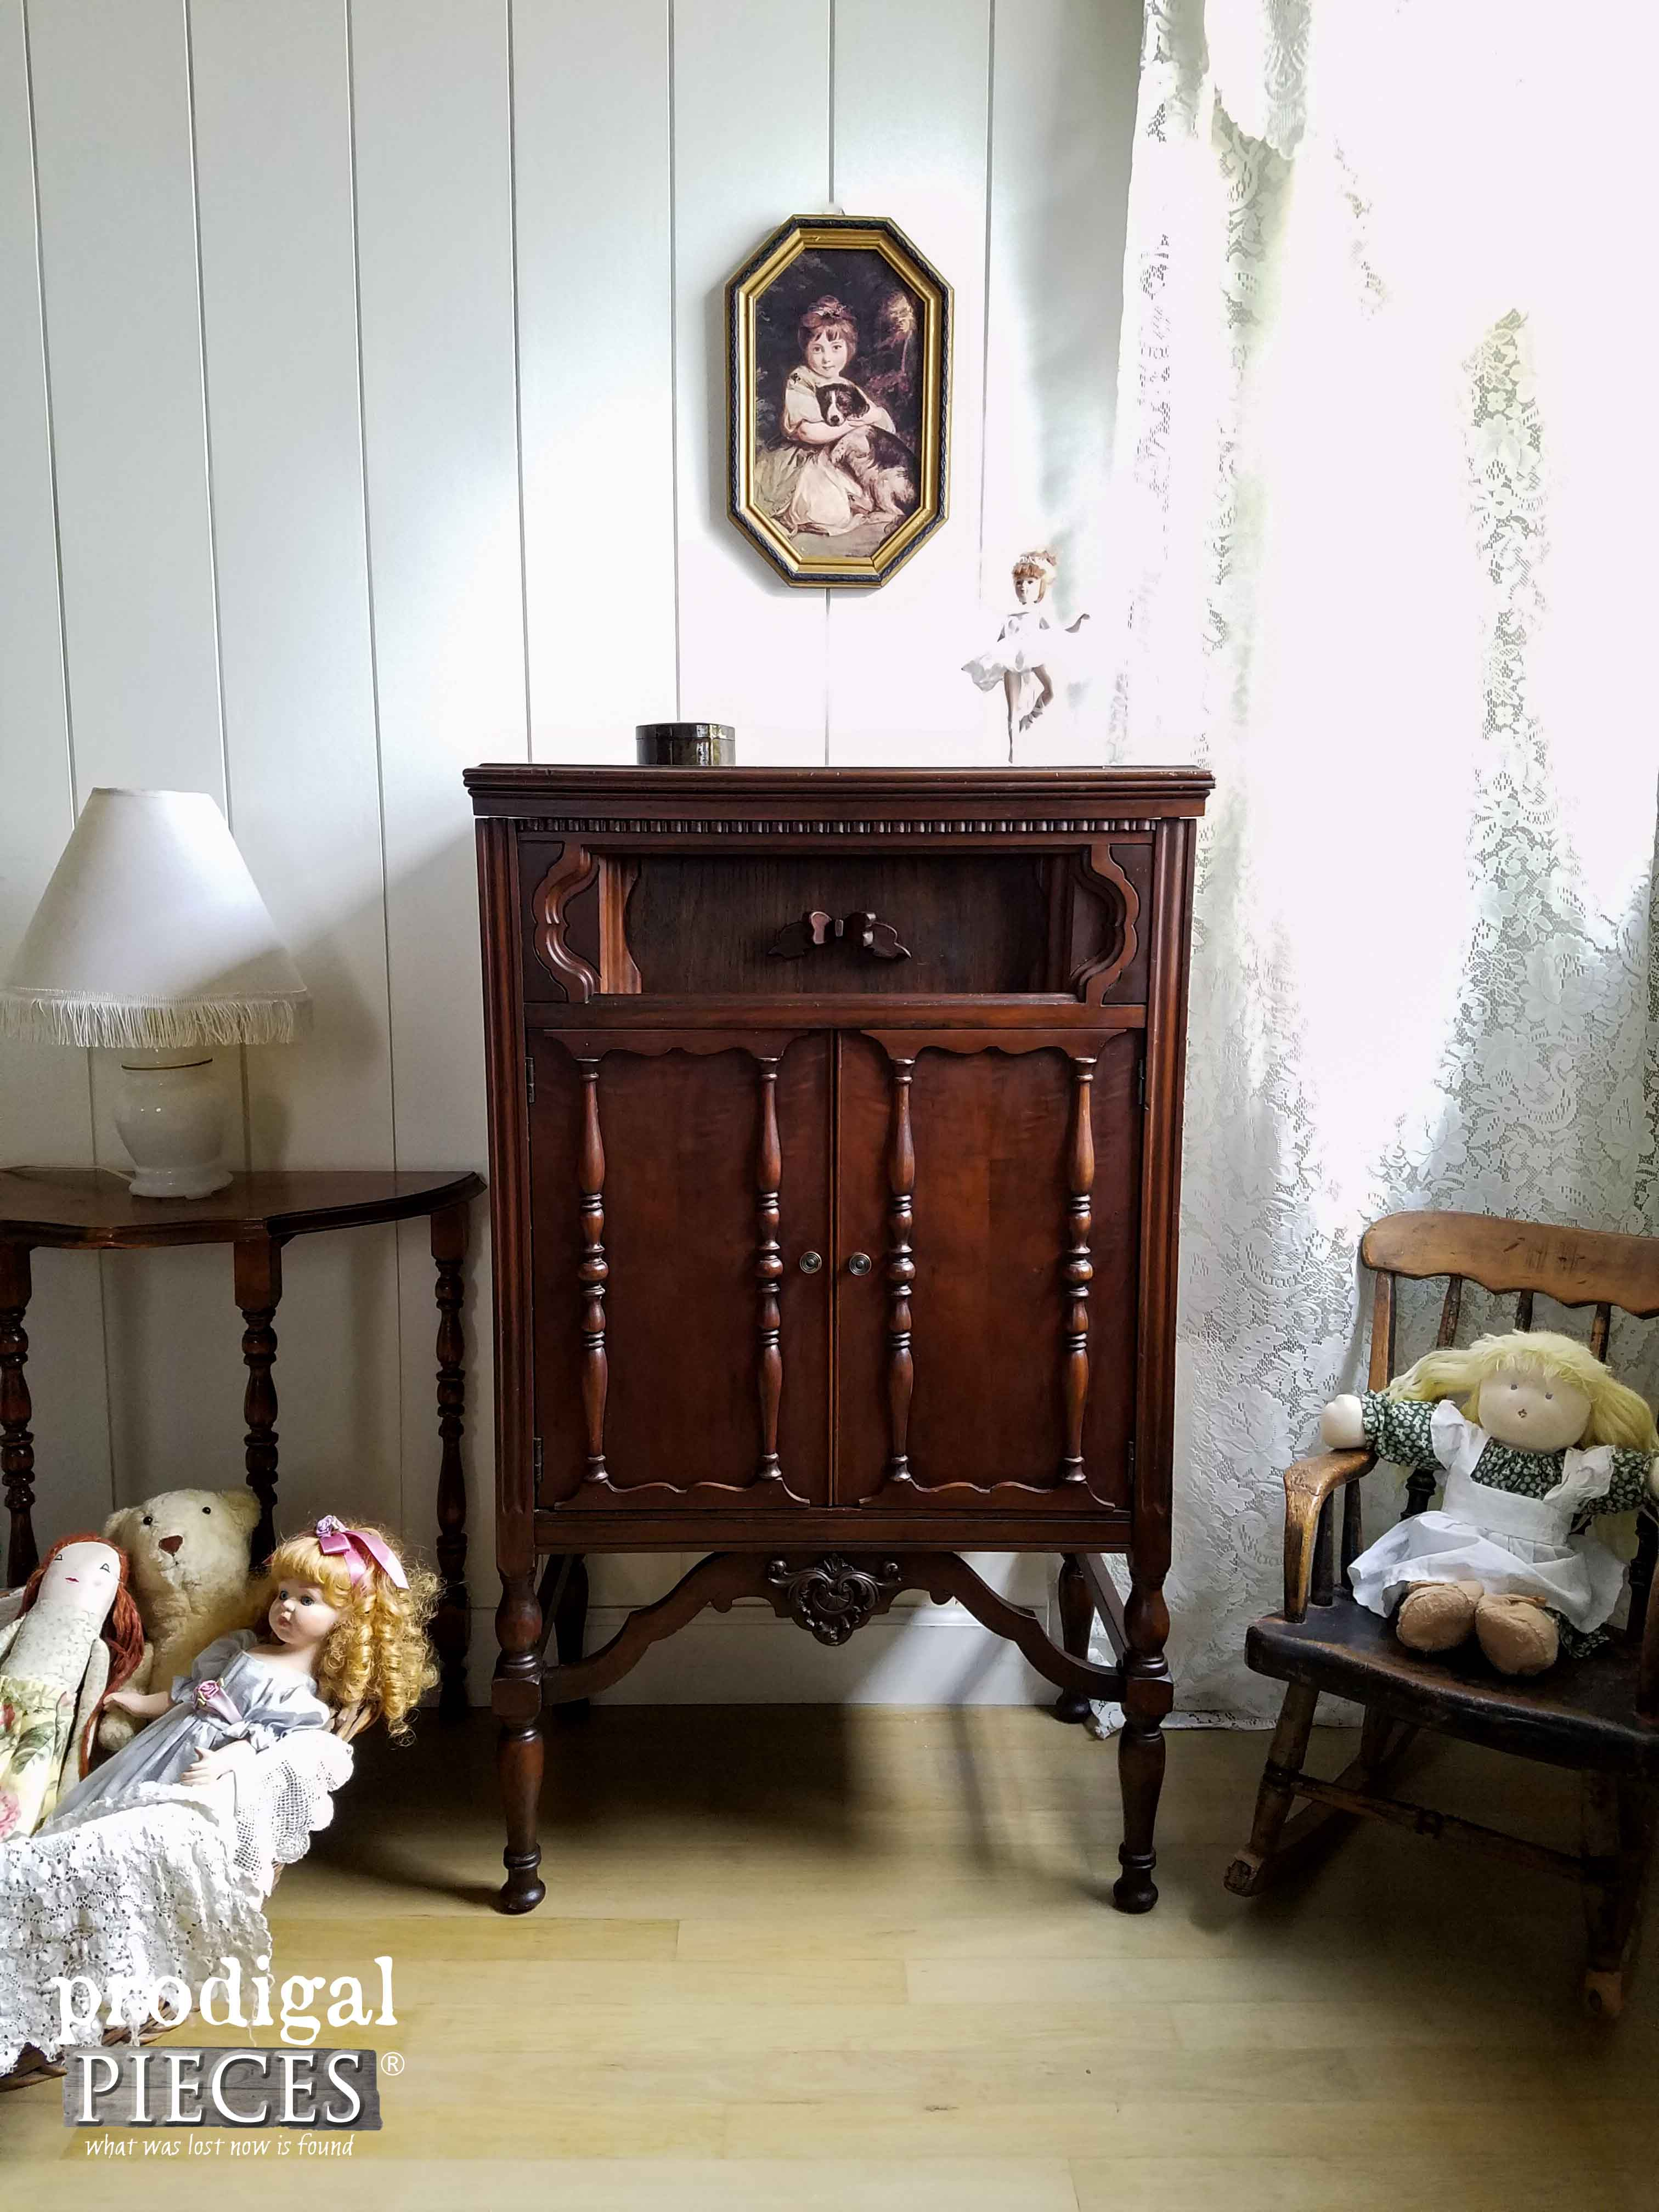 Antique Pooley Radio Cabinet Turned Dollhouse by Prodigal Pieces | www.prodigalpieces.com